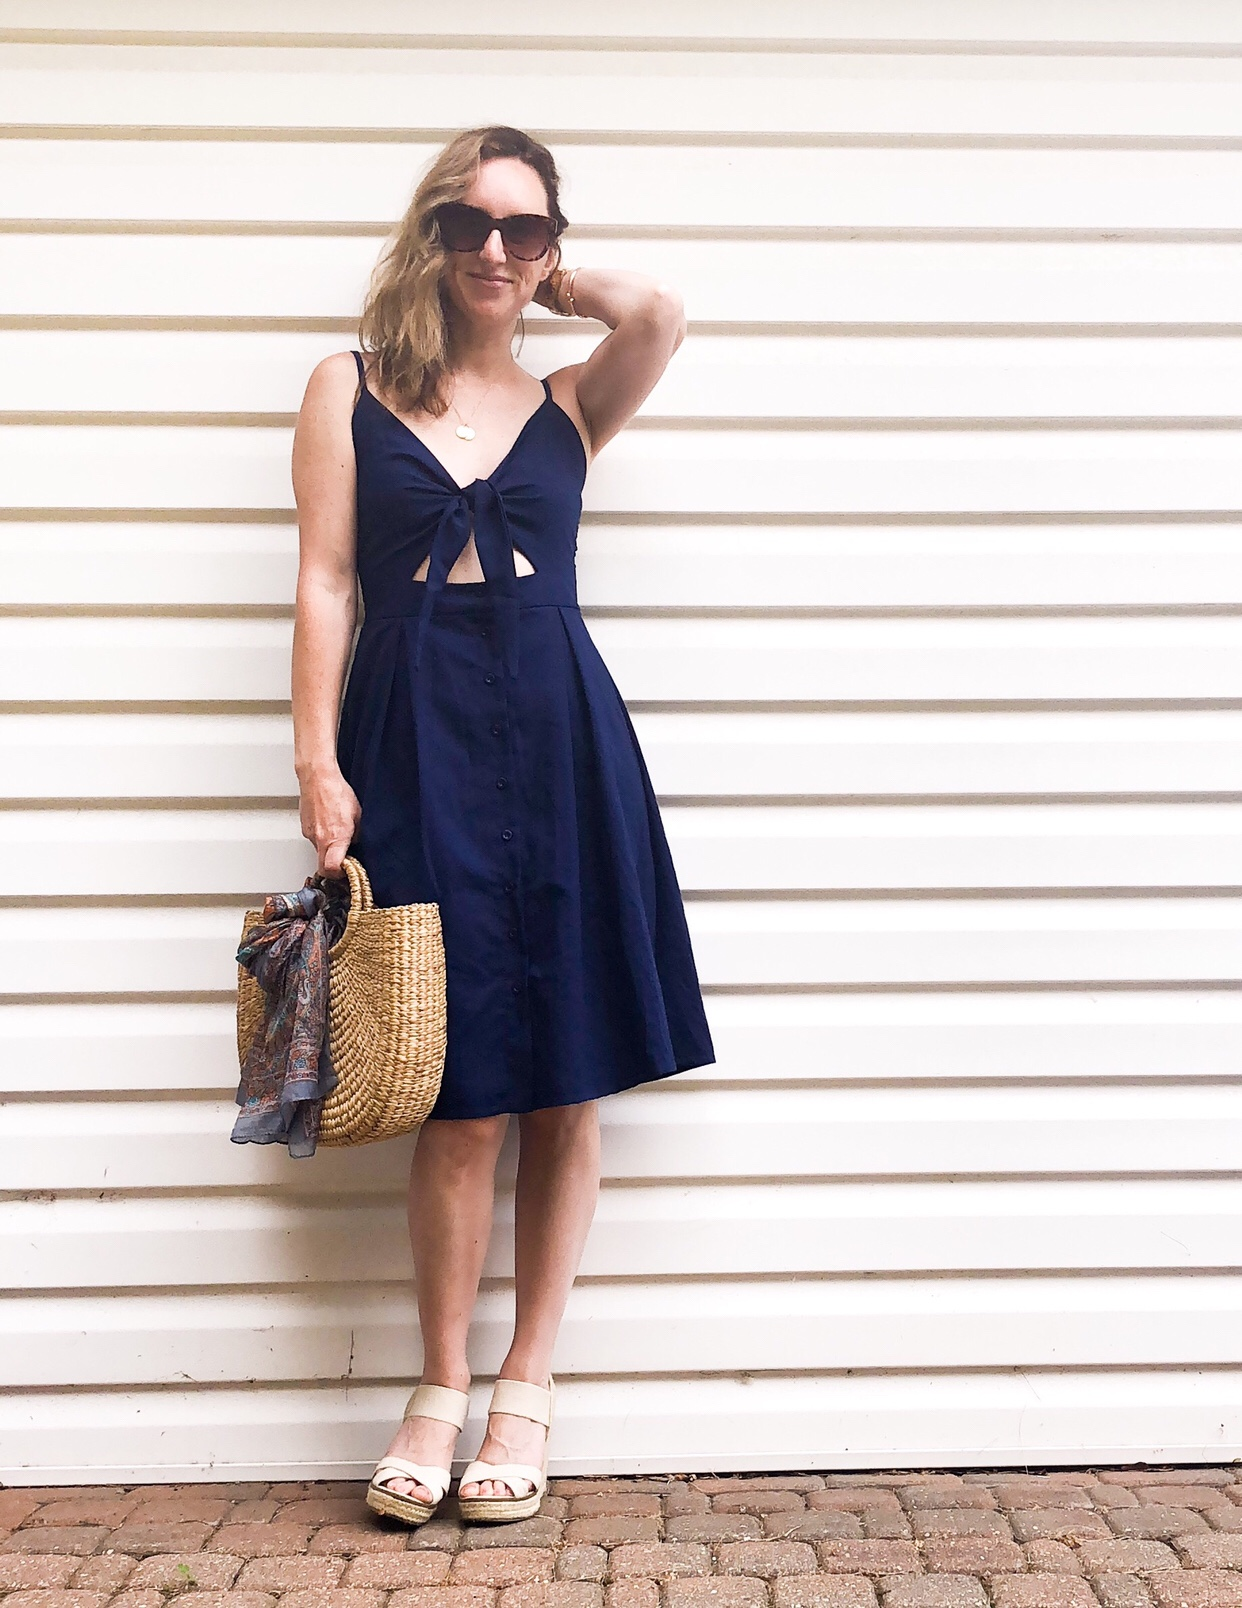 sweet navy day dress for summer #dress #summerstyle #afforablefashion #strawhandbag #everydaystyle